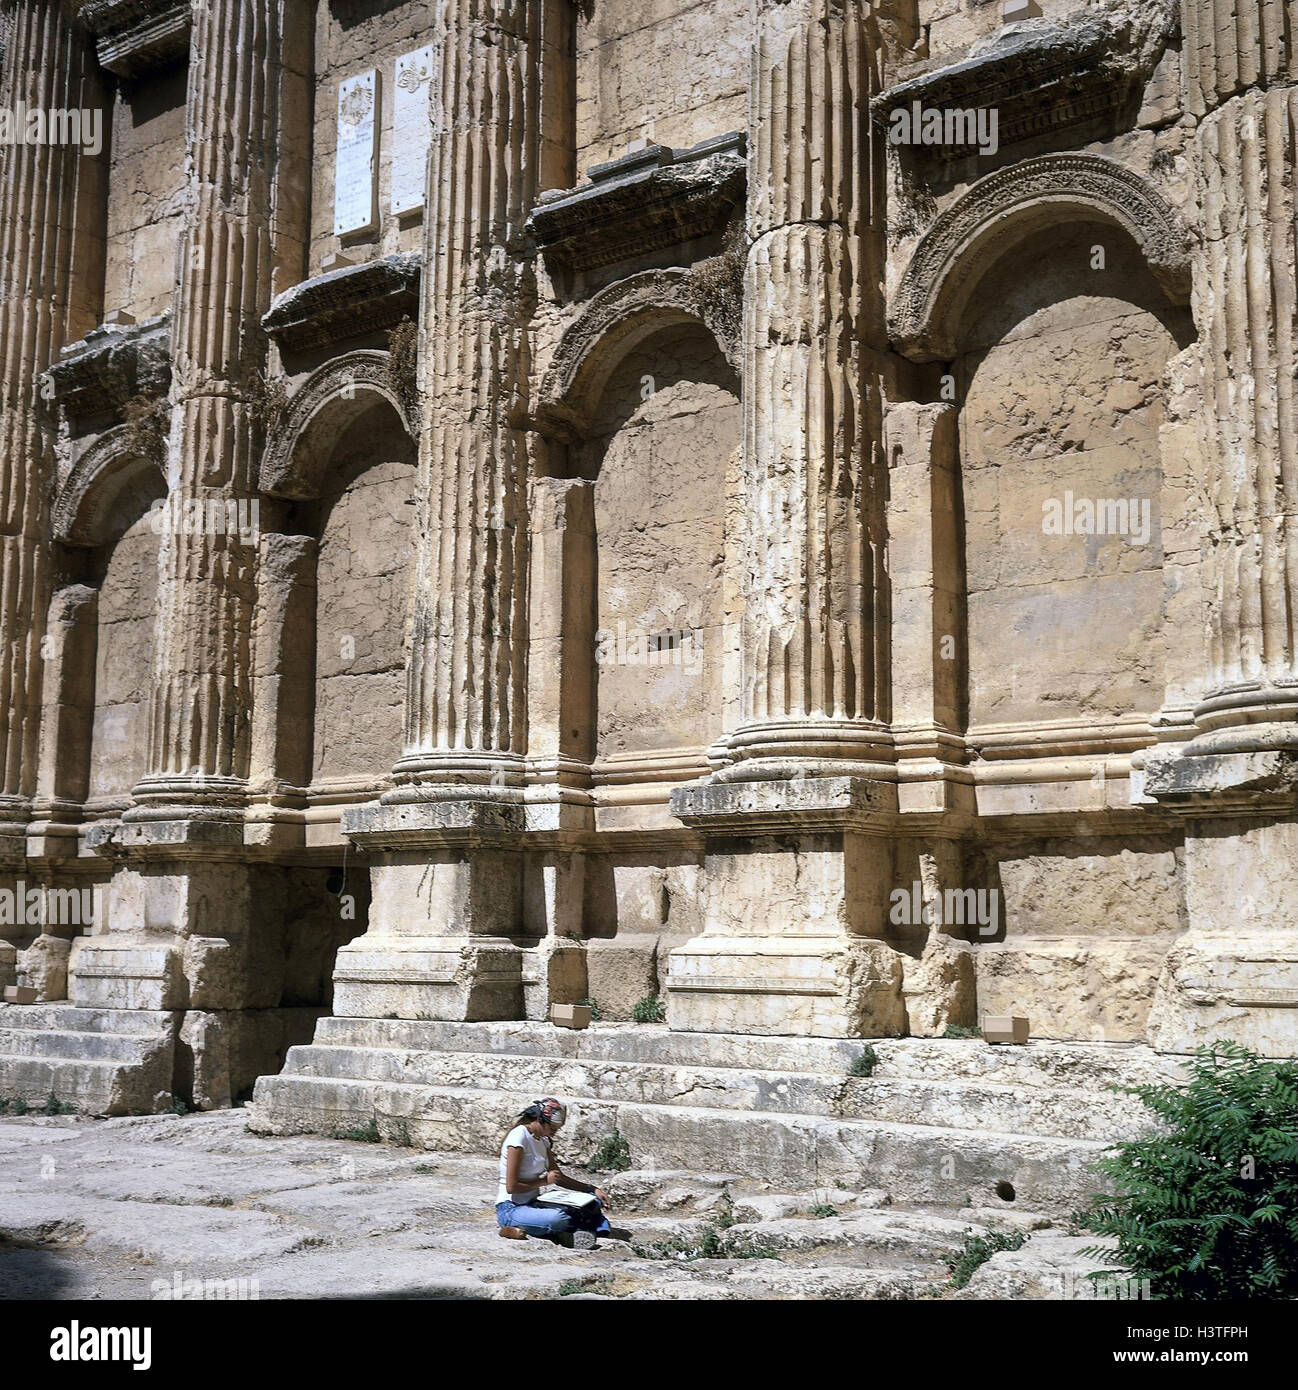 Lebanon, Baalbek, Baccus temple, woman, sit, sign, the Near East, Balbek, buildings, structure, architecture, architecture, - Stock Image